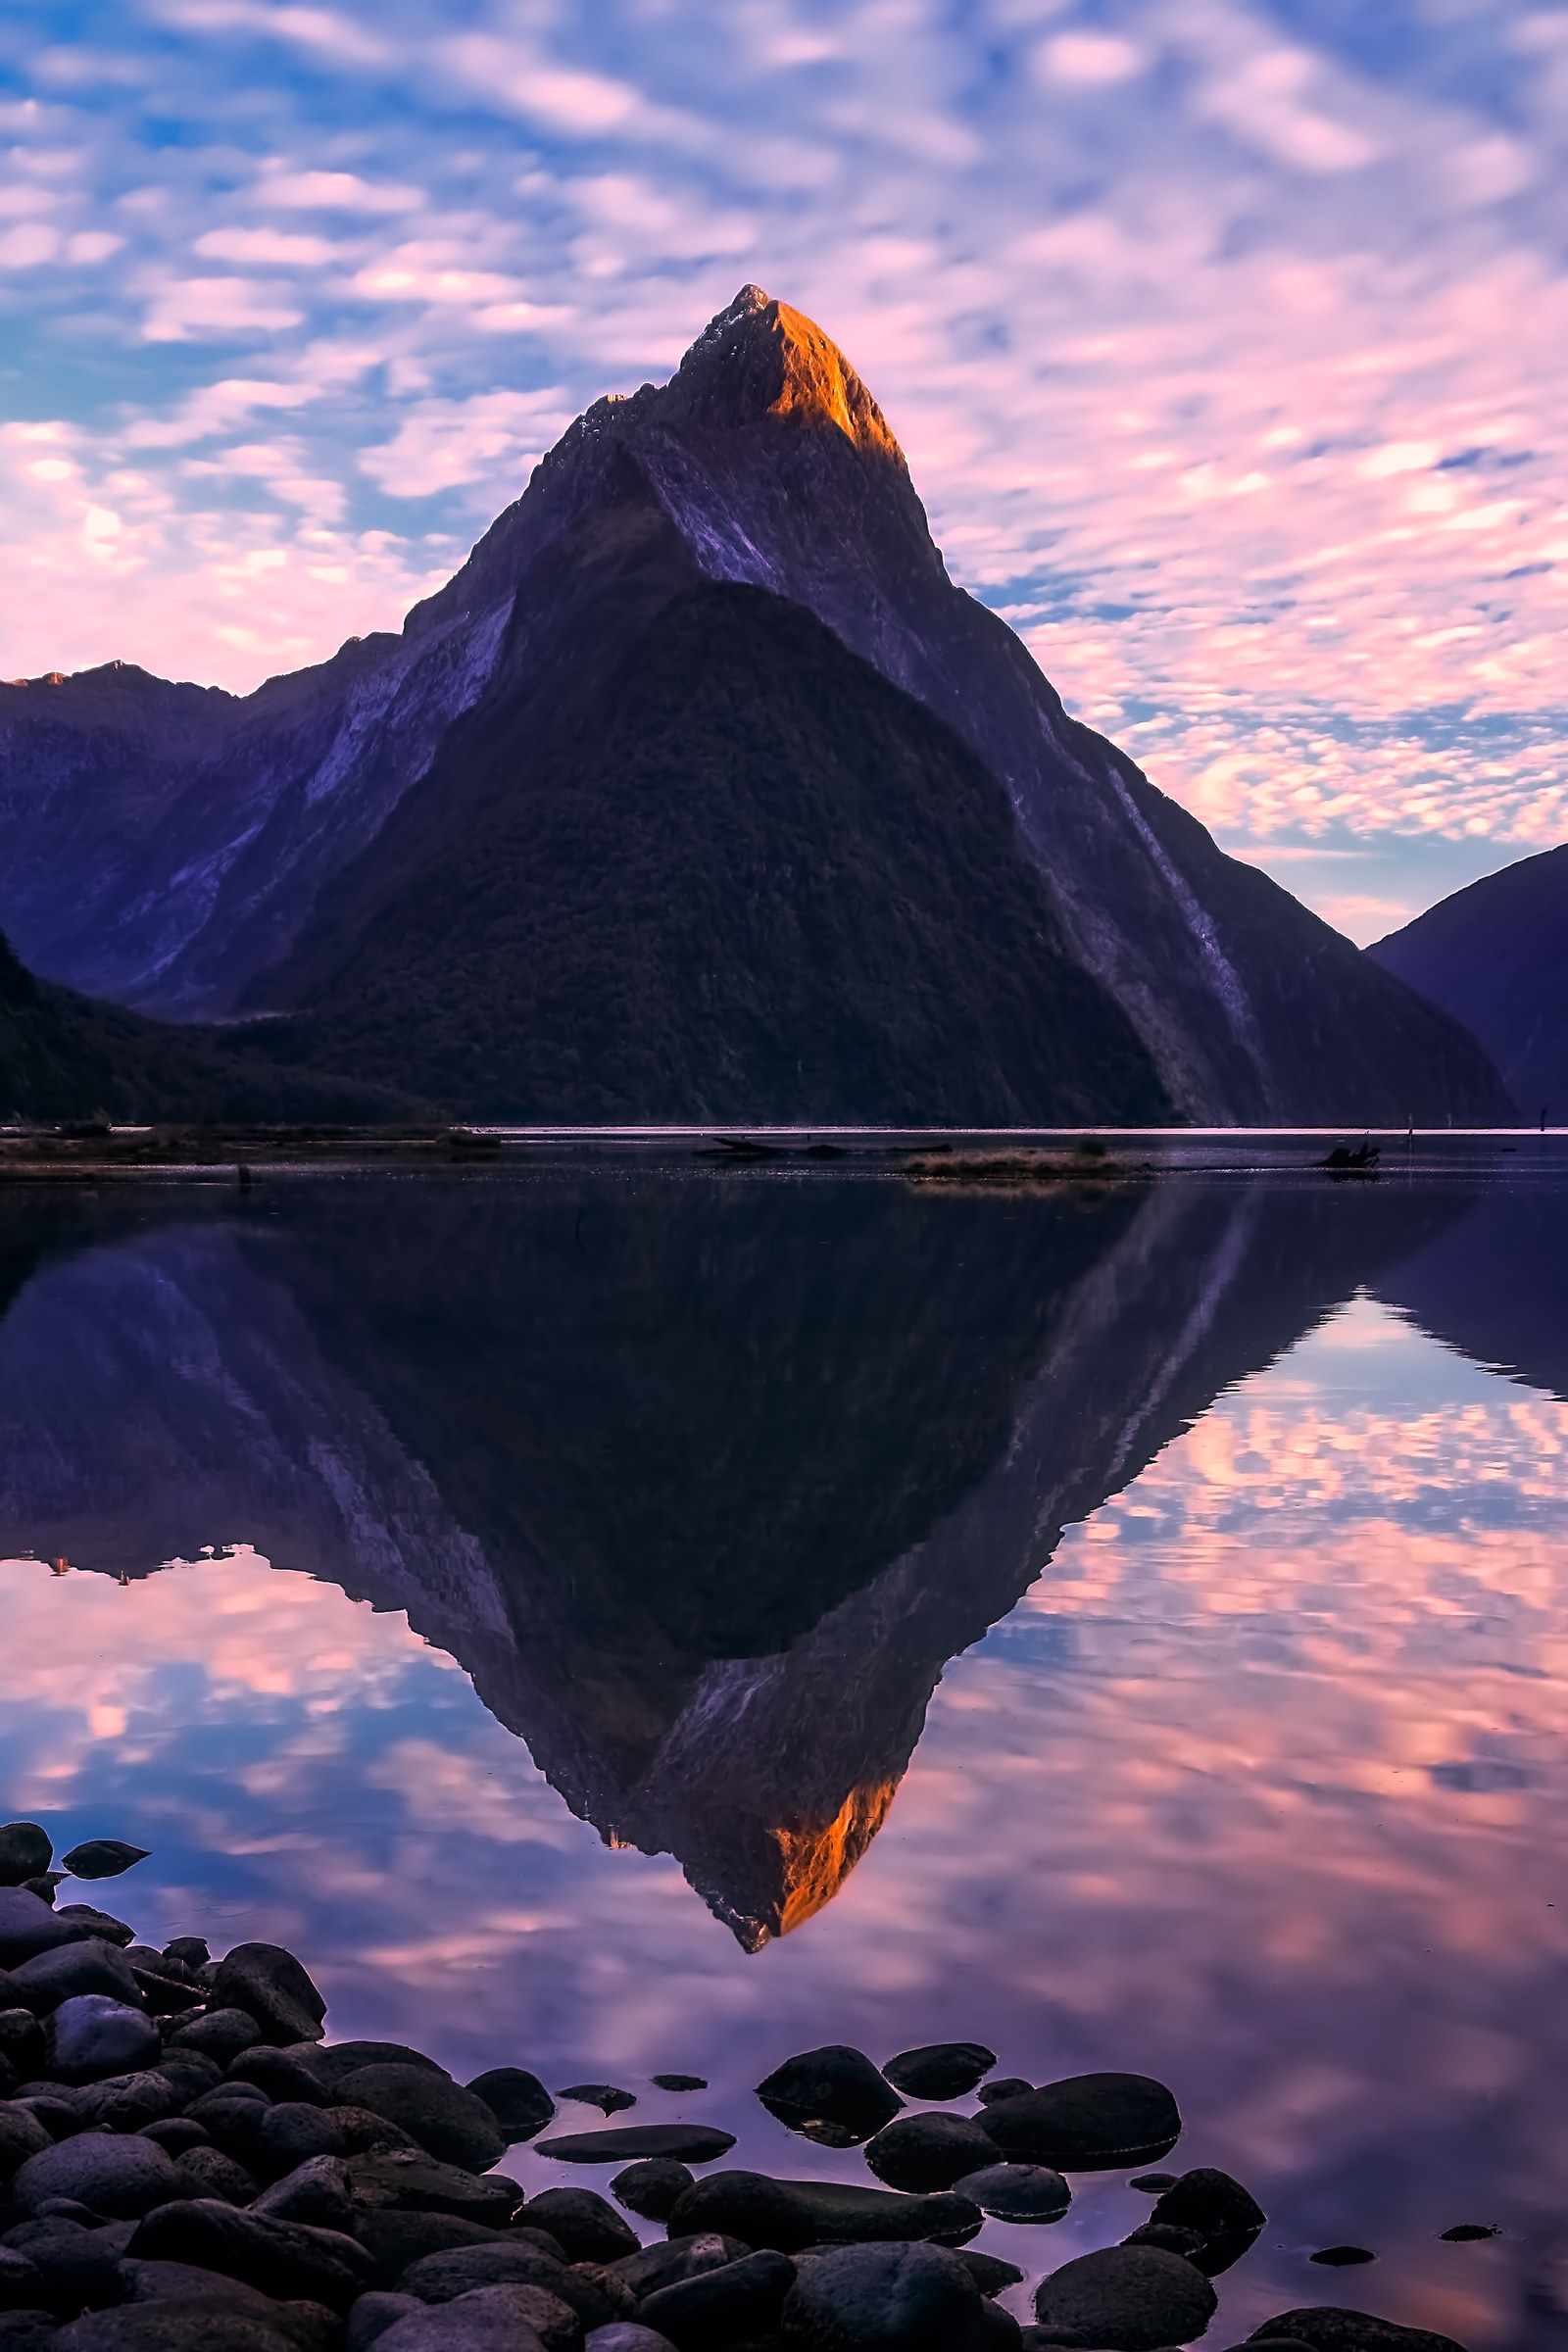 New Zealand: Fiordland National Park -  Head to New Zealand's South Island to visit this spectacular landscape, known for its deep fjords formed by glaciers and the tranquil Milford Sound.